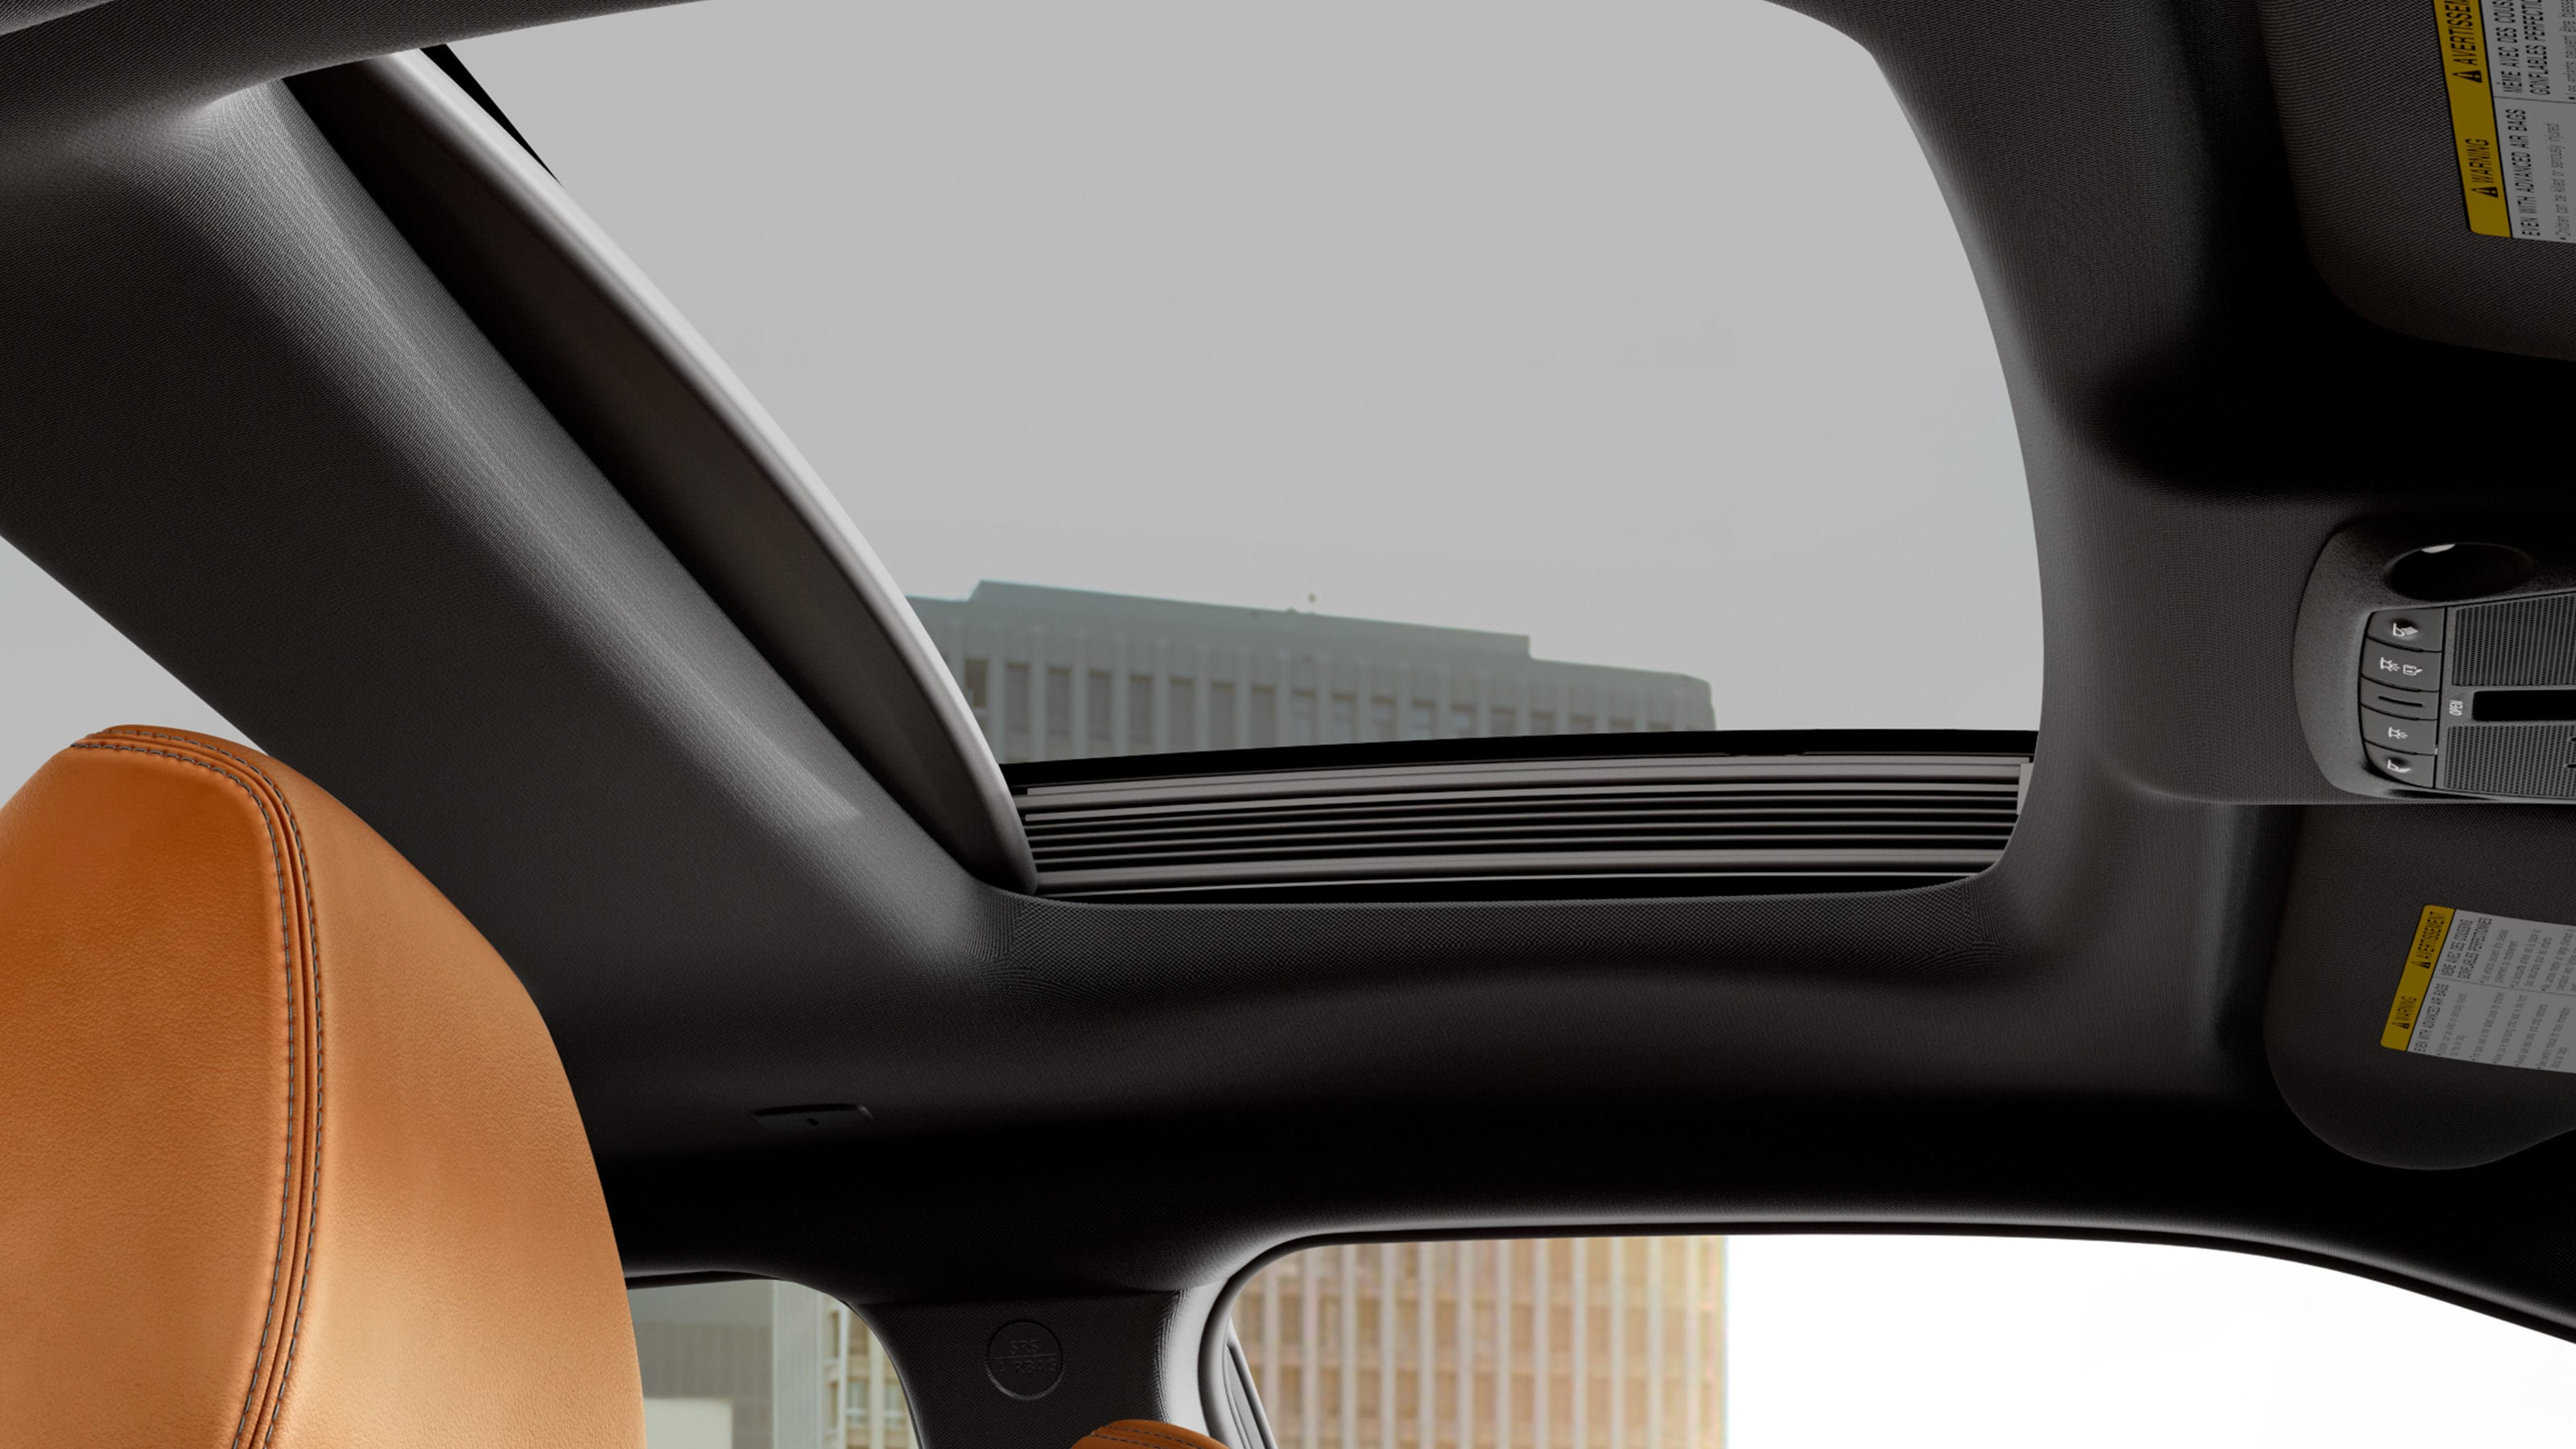 2019 Nissan Maxima dual panel panoramic moonroof